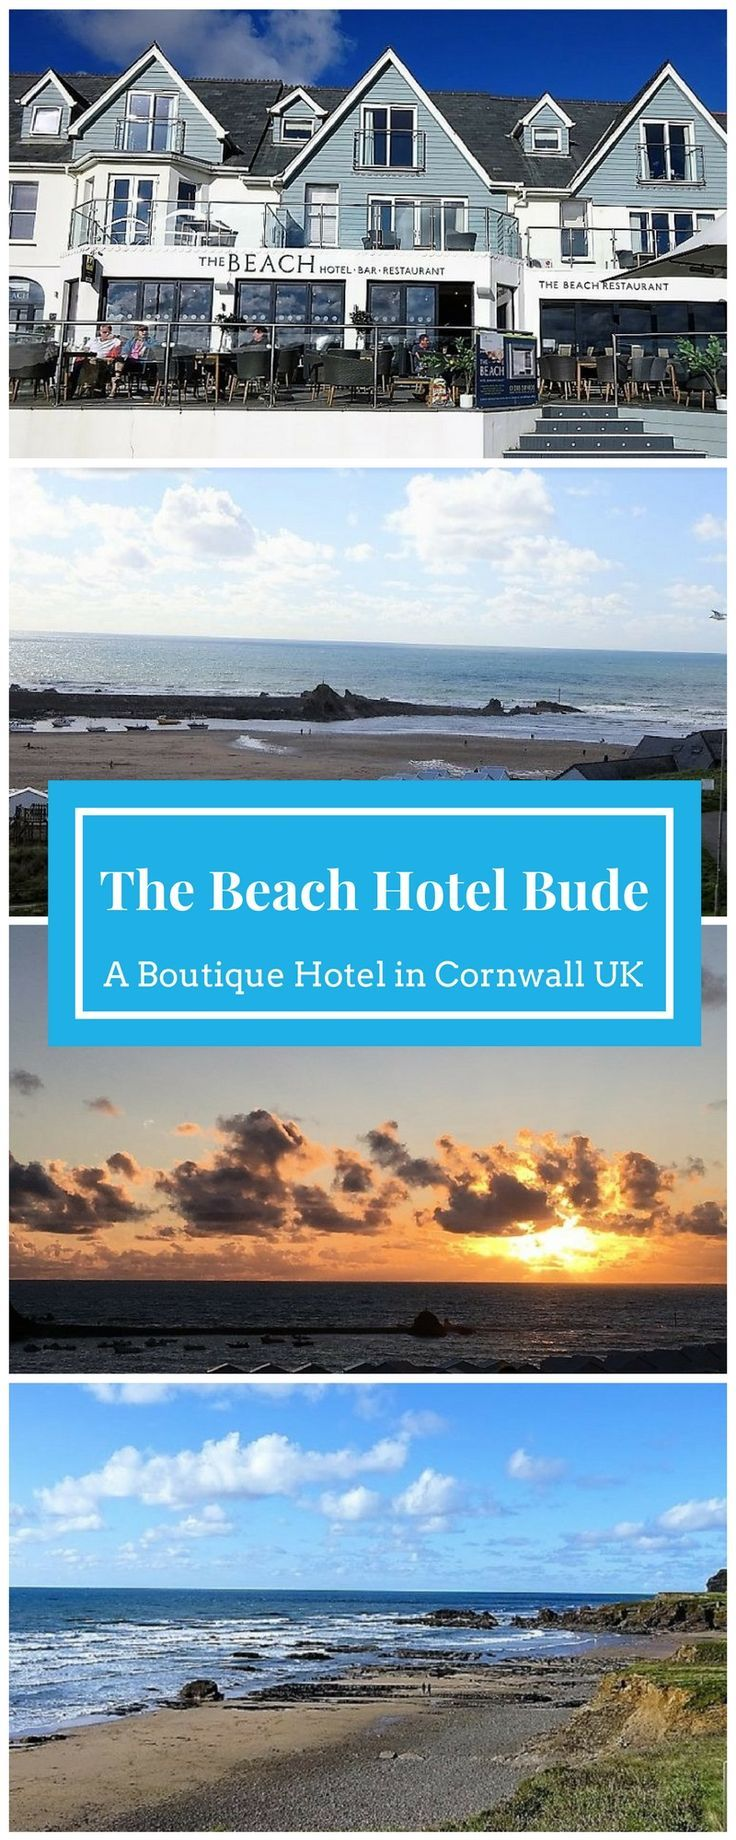 Beach Hotel, Bude, Cornwall - Boutique Hotel in Cornwall UK visit Cornwall | short break Cornwall | Boutique Hotel Cornwall | Seaside Boutique Hotel | Seaside Hotel UK | UK Boutique Hotel | Cornwall Break | Cornwall Luxury Hotel